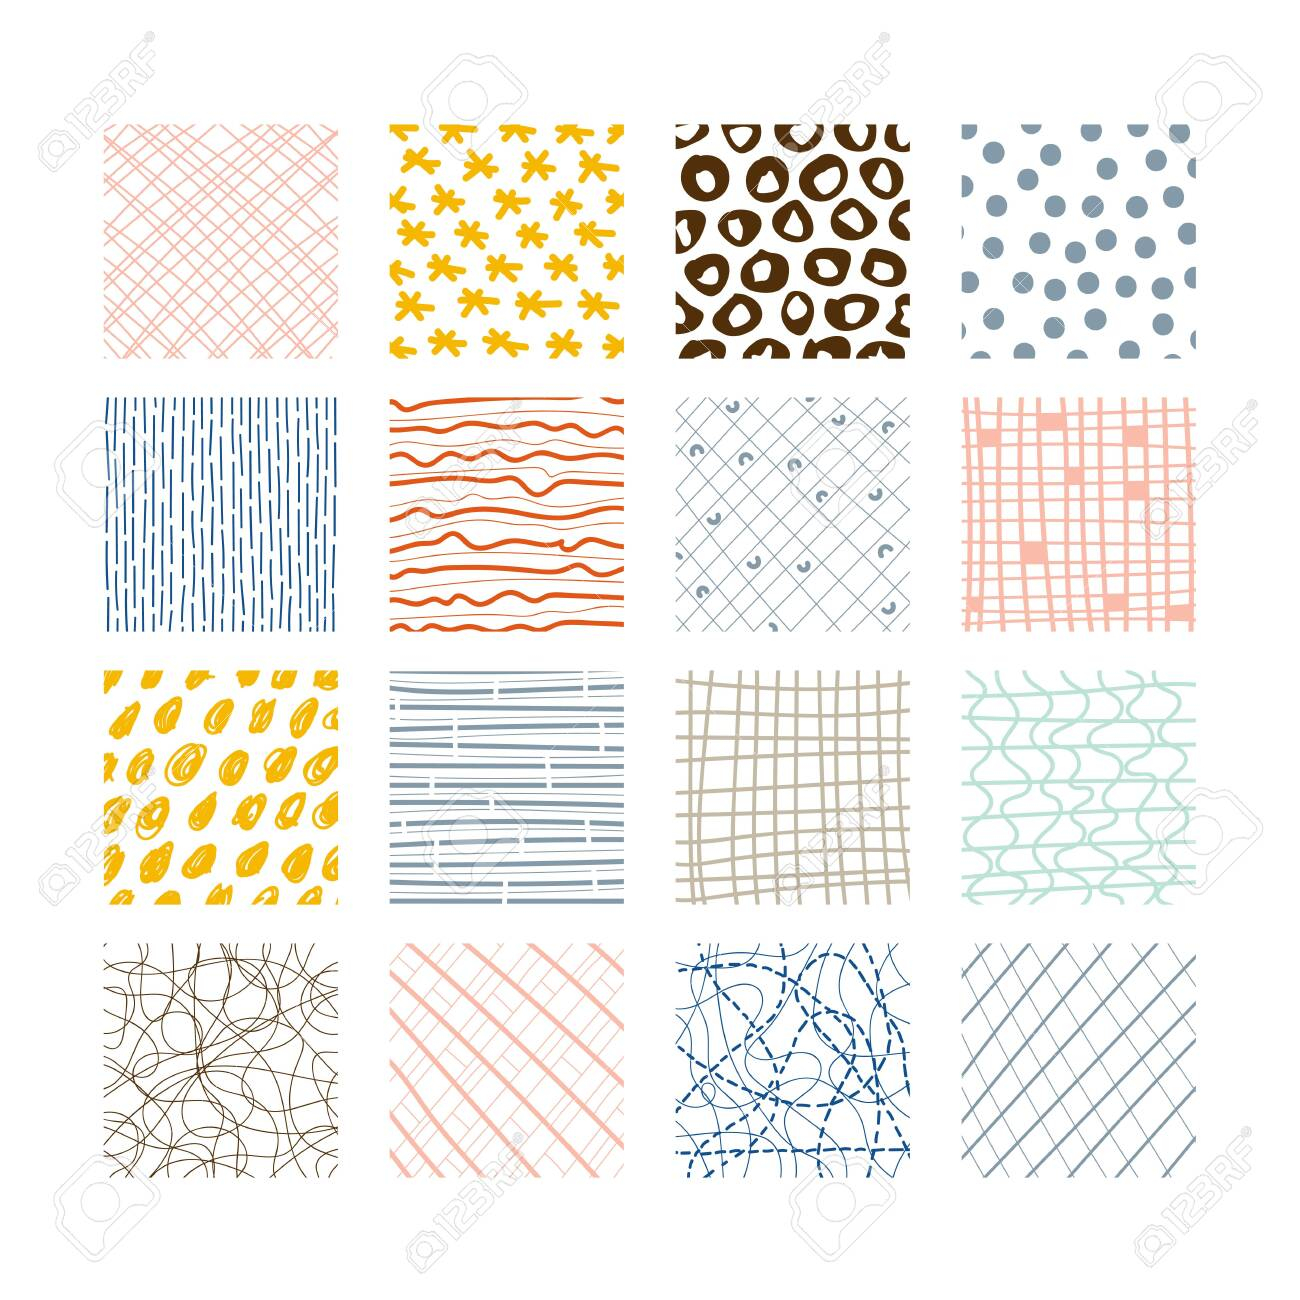 photo stock vector set of abstract colored squares hand drawn backgrounds design elements doodle drawings simple scratc